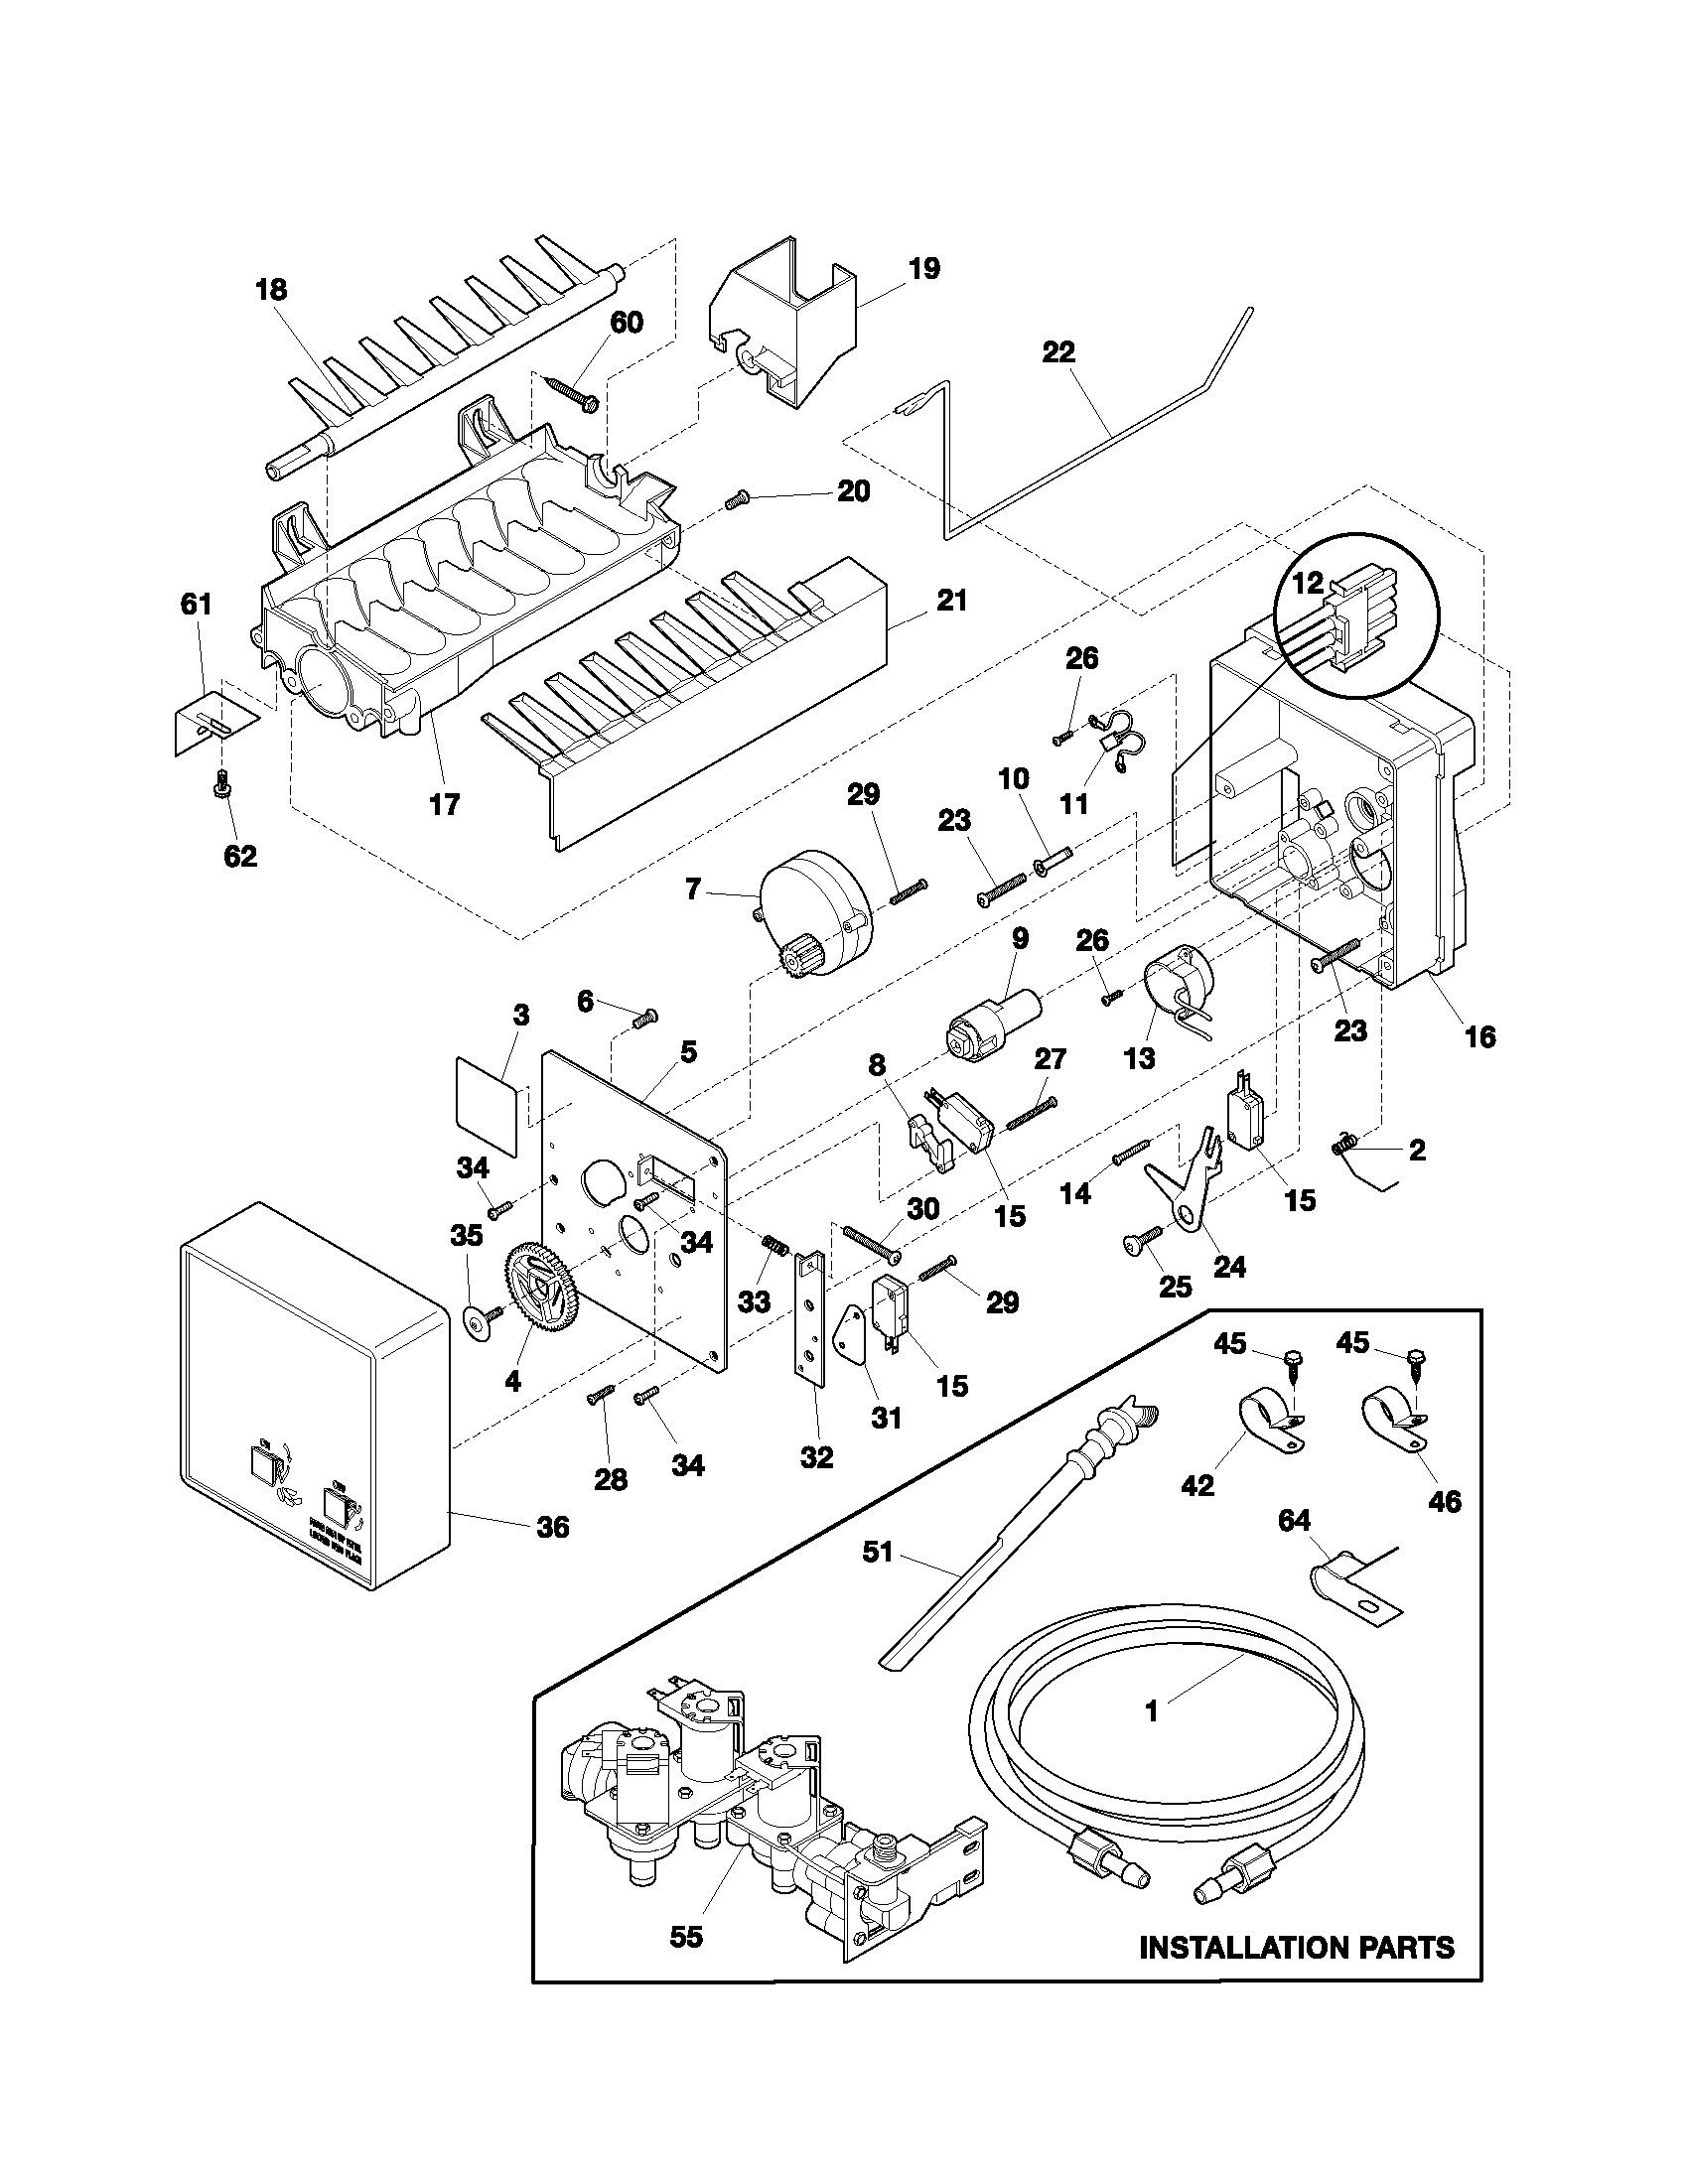 hight resolution of  frigidaire ice maker parts diagram charming maytag refrigerator ice on ice maker capacitor ice with simple refrigerator wiring